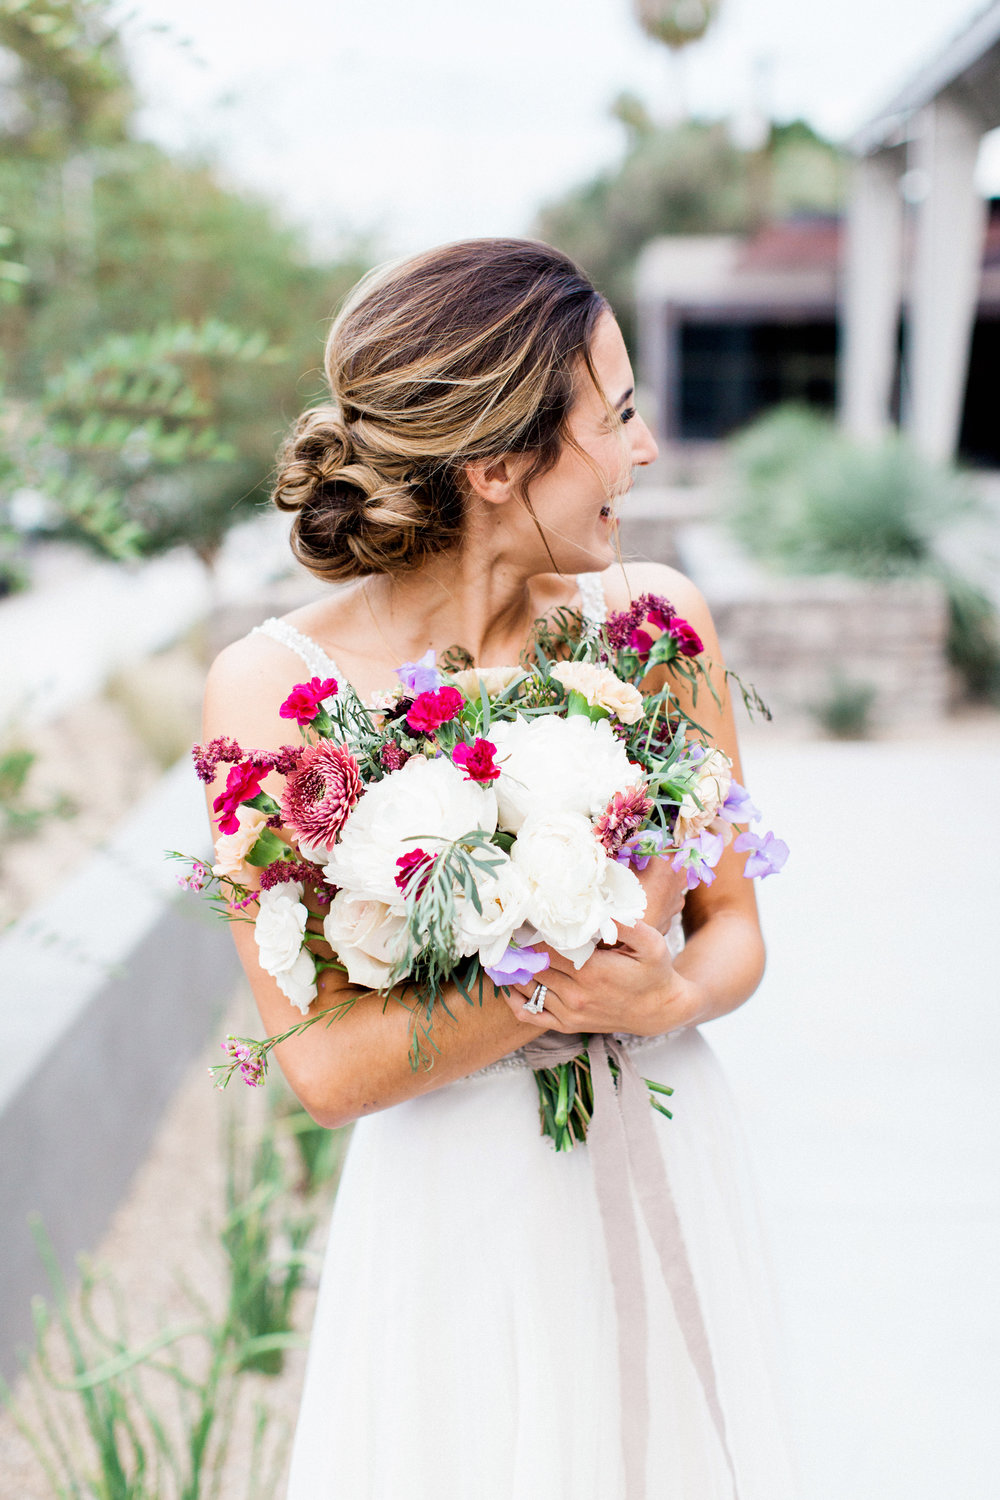 Mauve and Lavender Modern Wedding Inspiration - Bridal Style